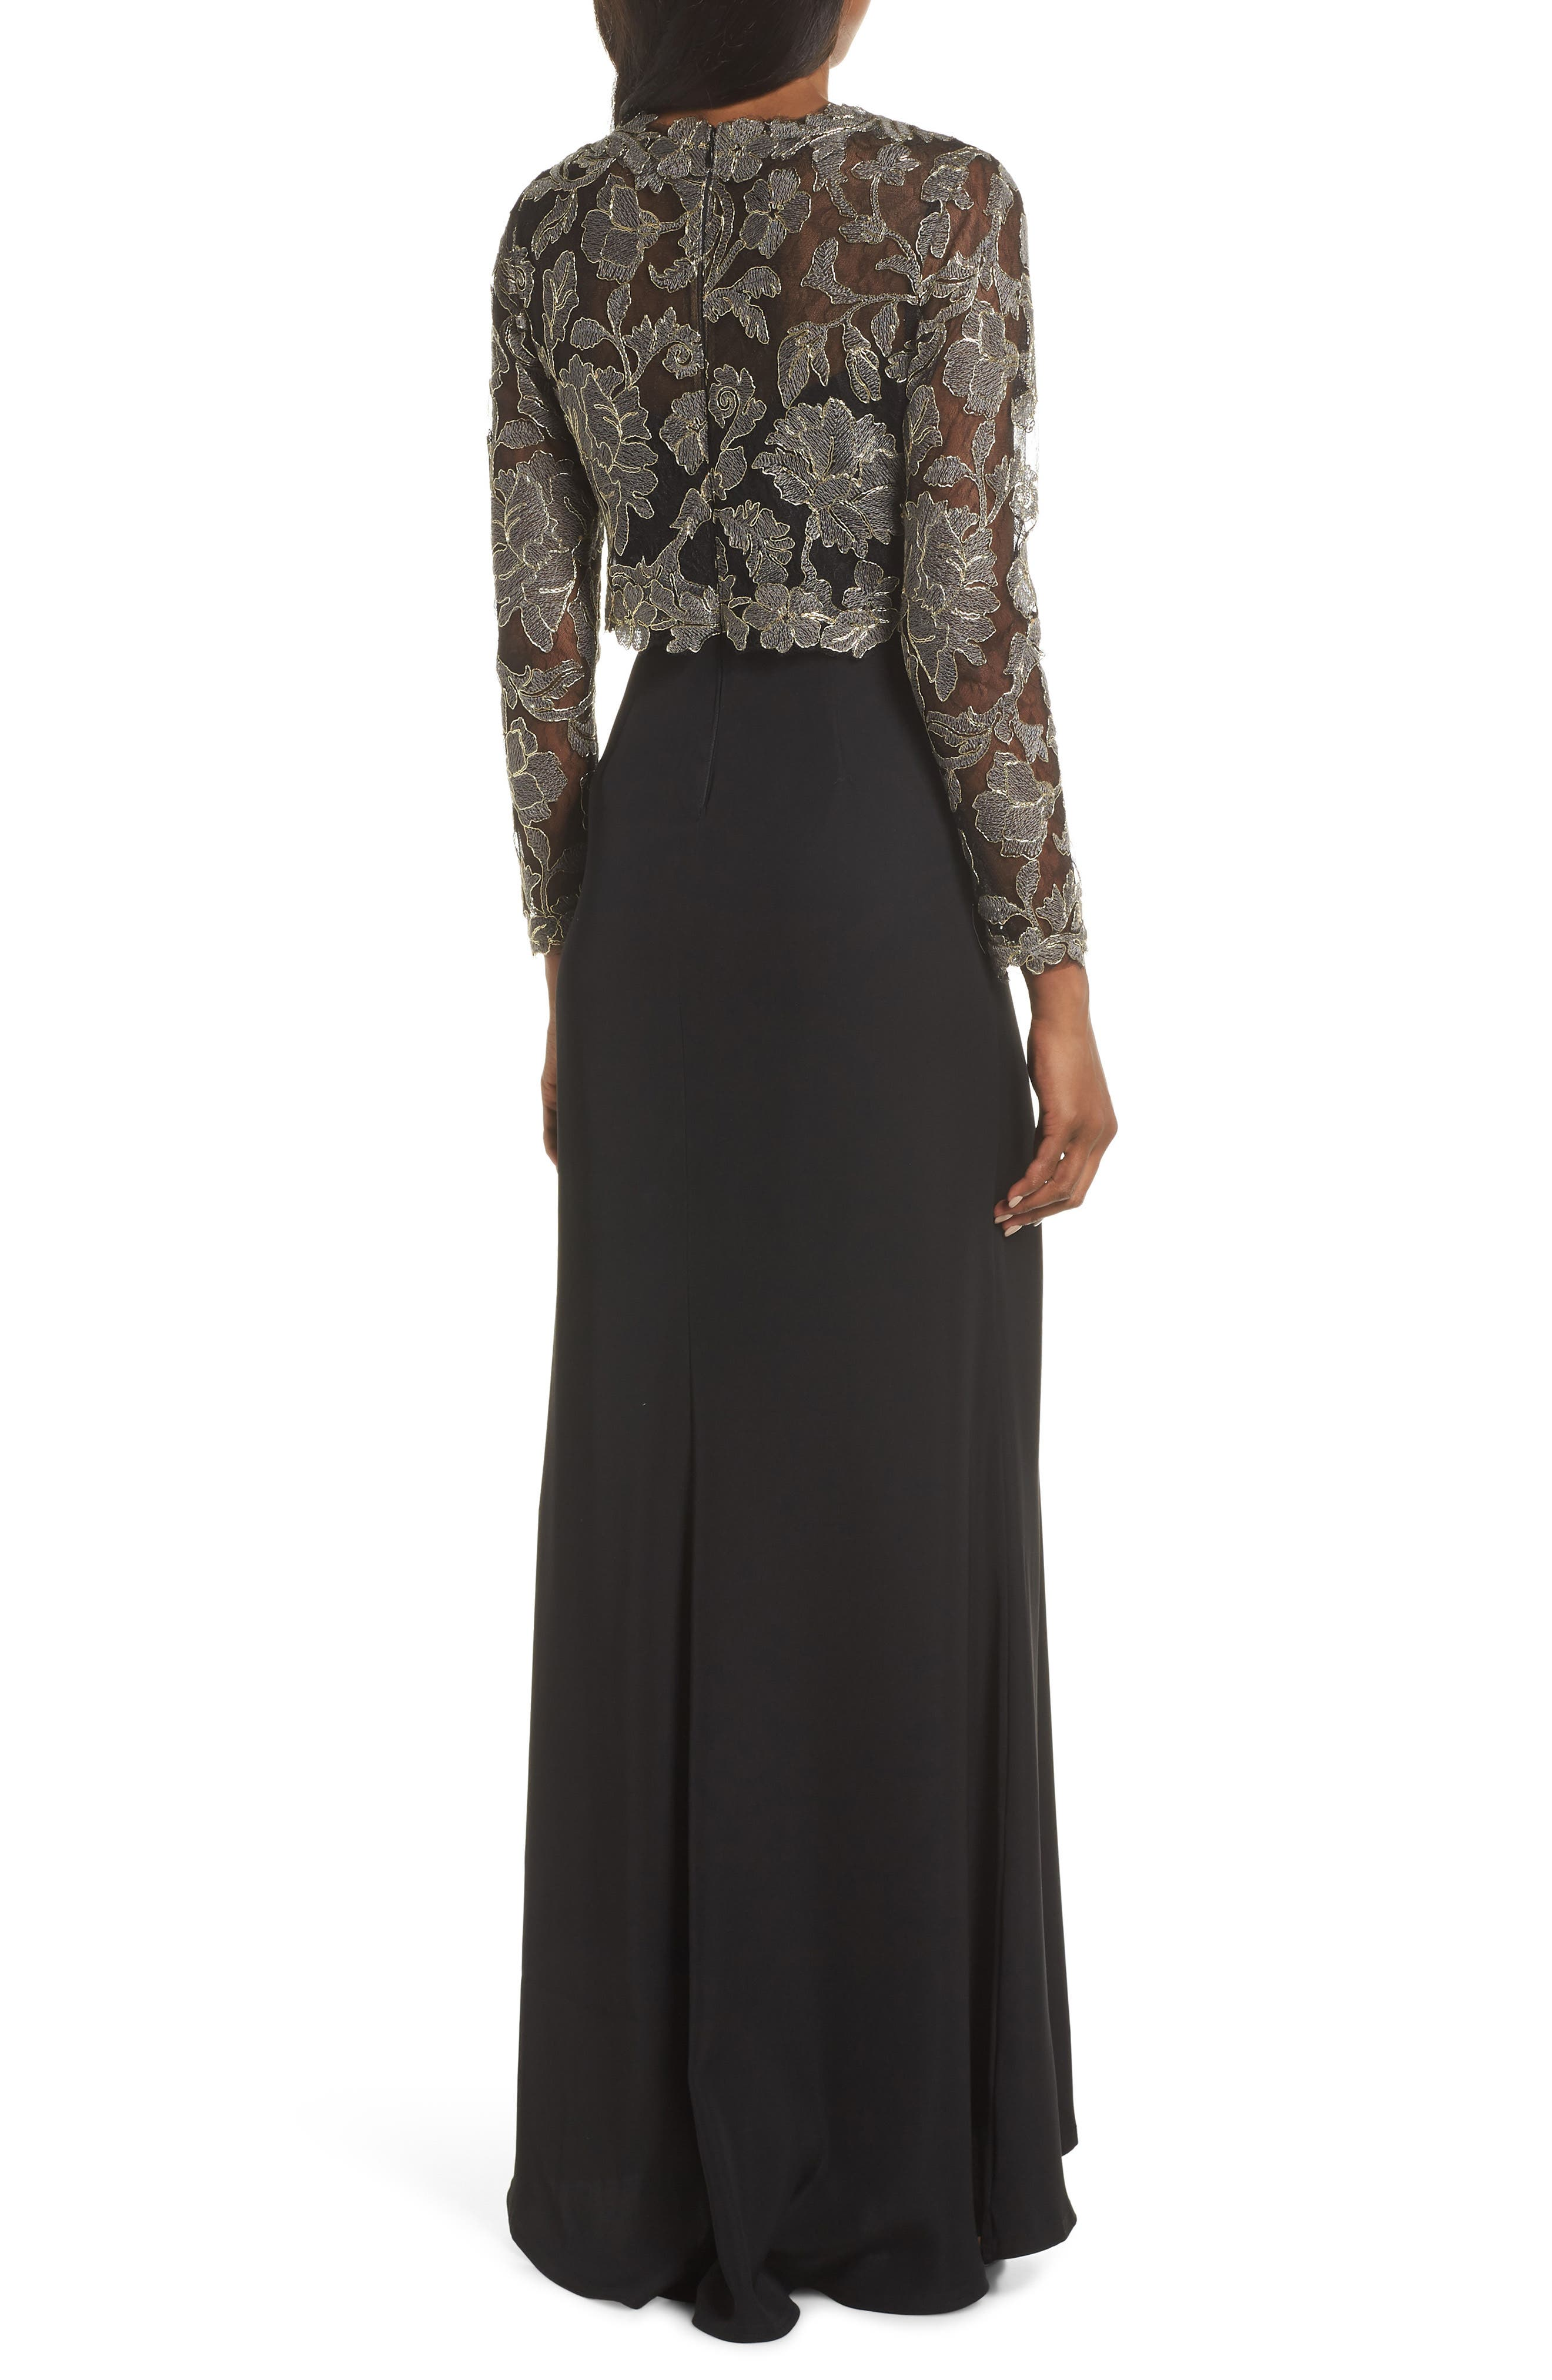 TADASHI SHOJI,                             Crepe & Embroidered Lace Gown,                             Alternate thumbnail 2, color,                             SMOKE PEARL/ BLACK